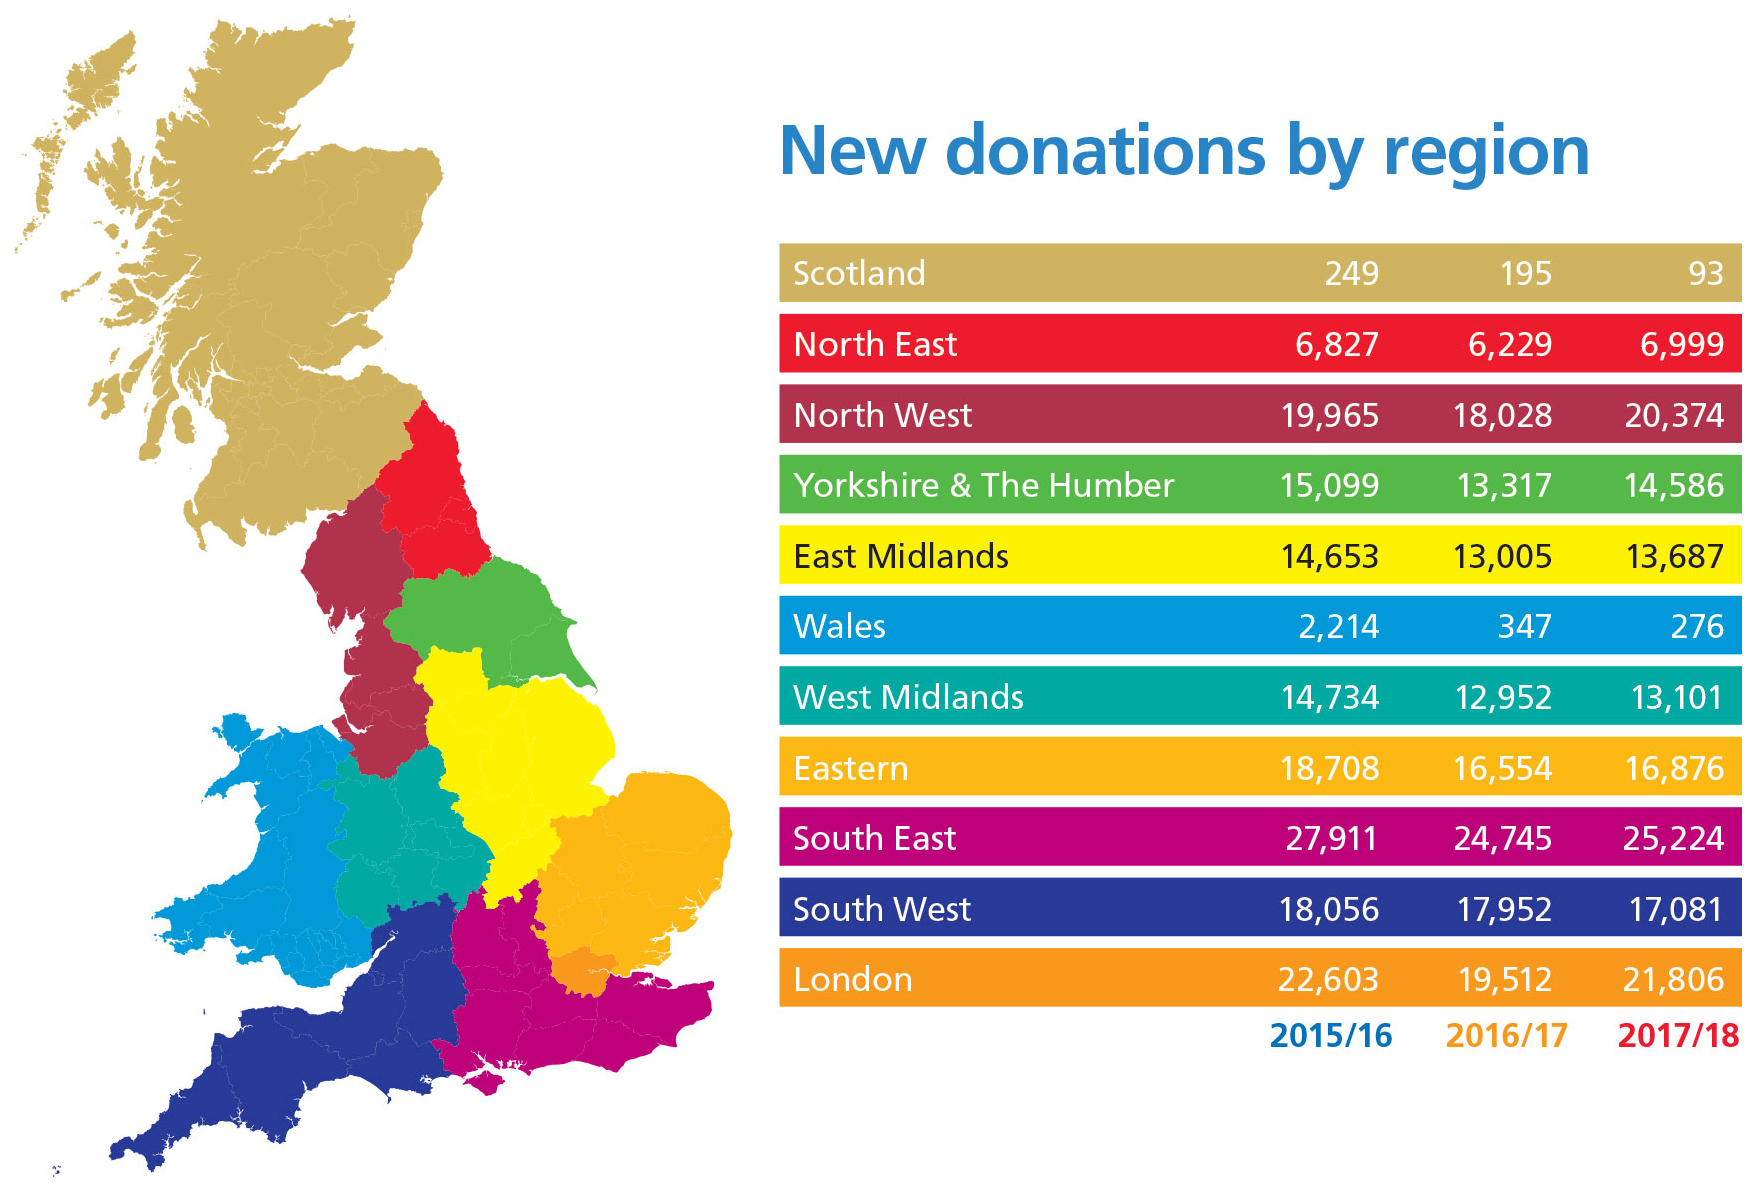 Map showing new blood donations by region